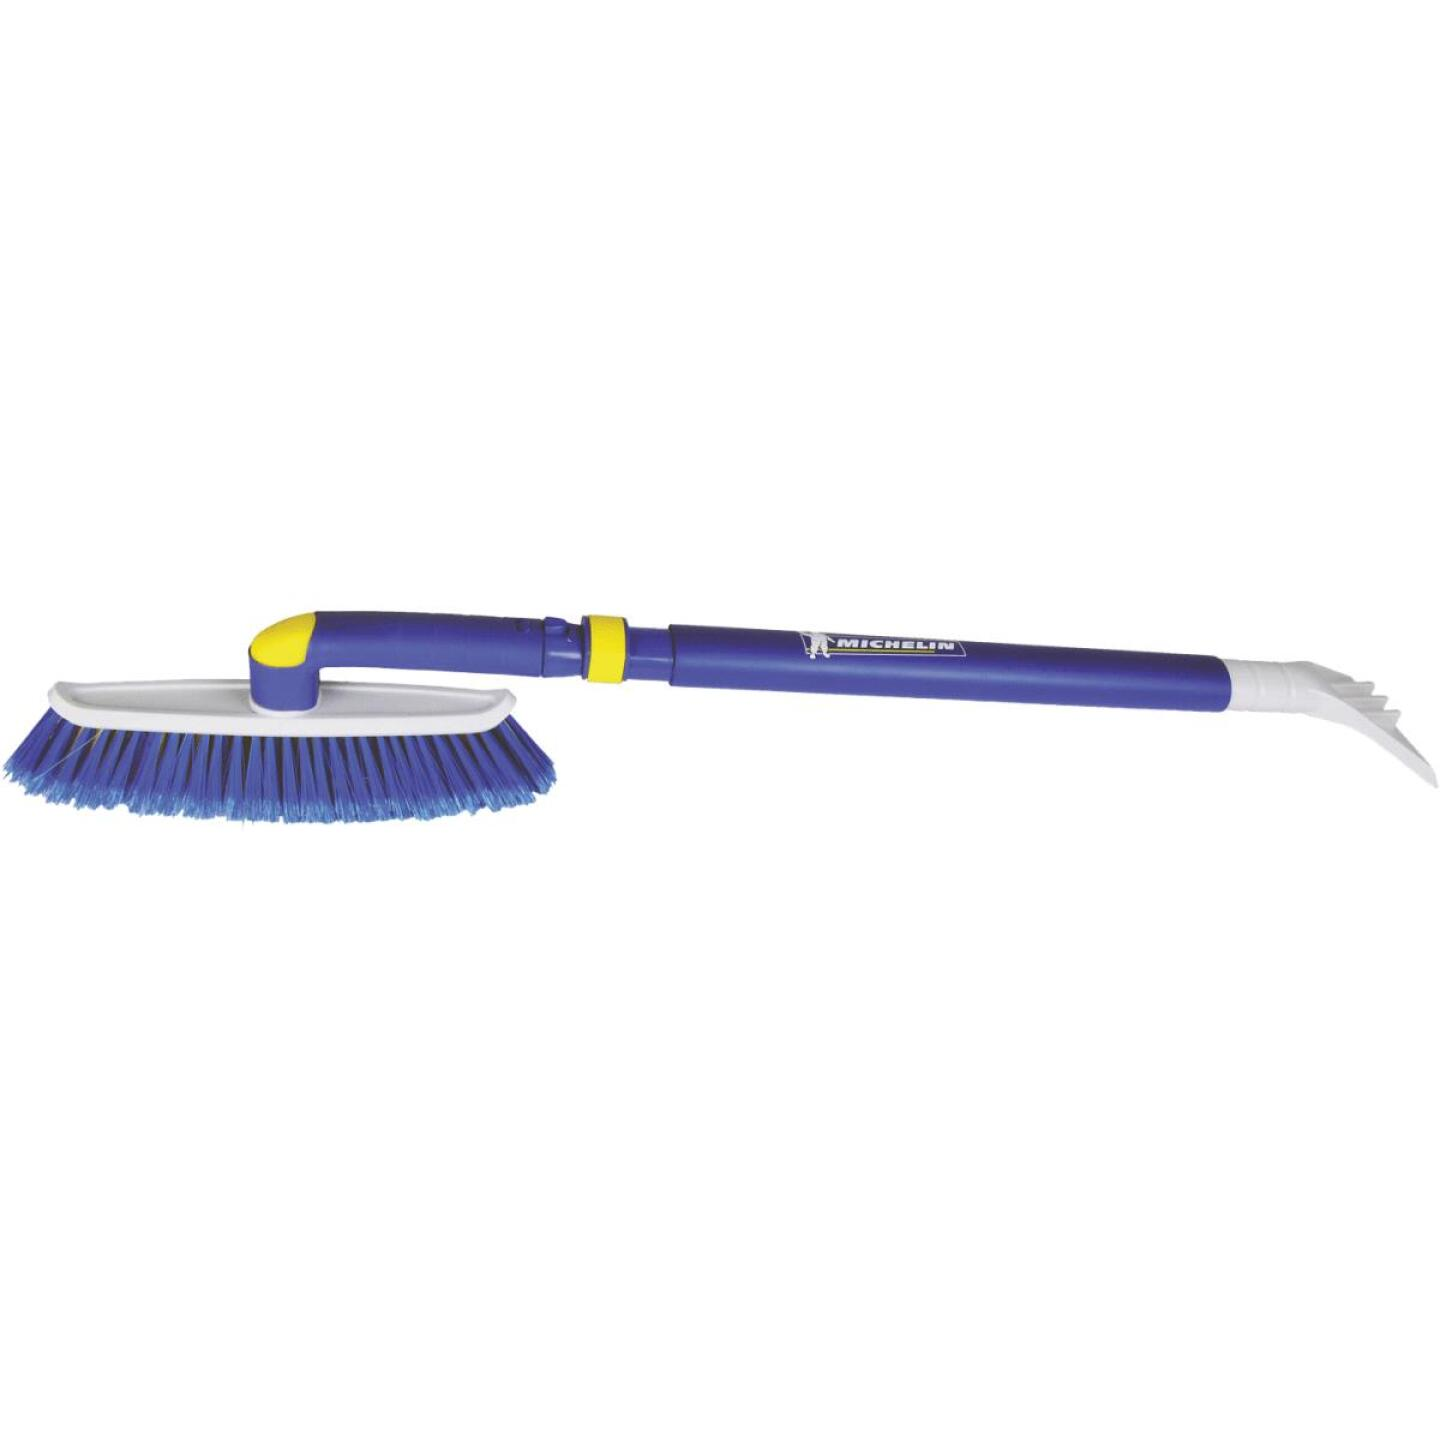 Michelin 50 In. Steel Hybrid Telescopic Snowbrush with Ice Scraper Image 1